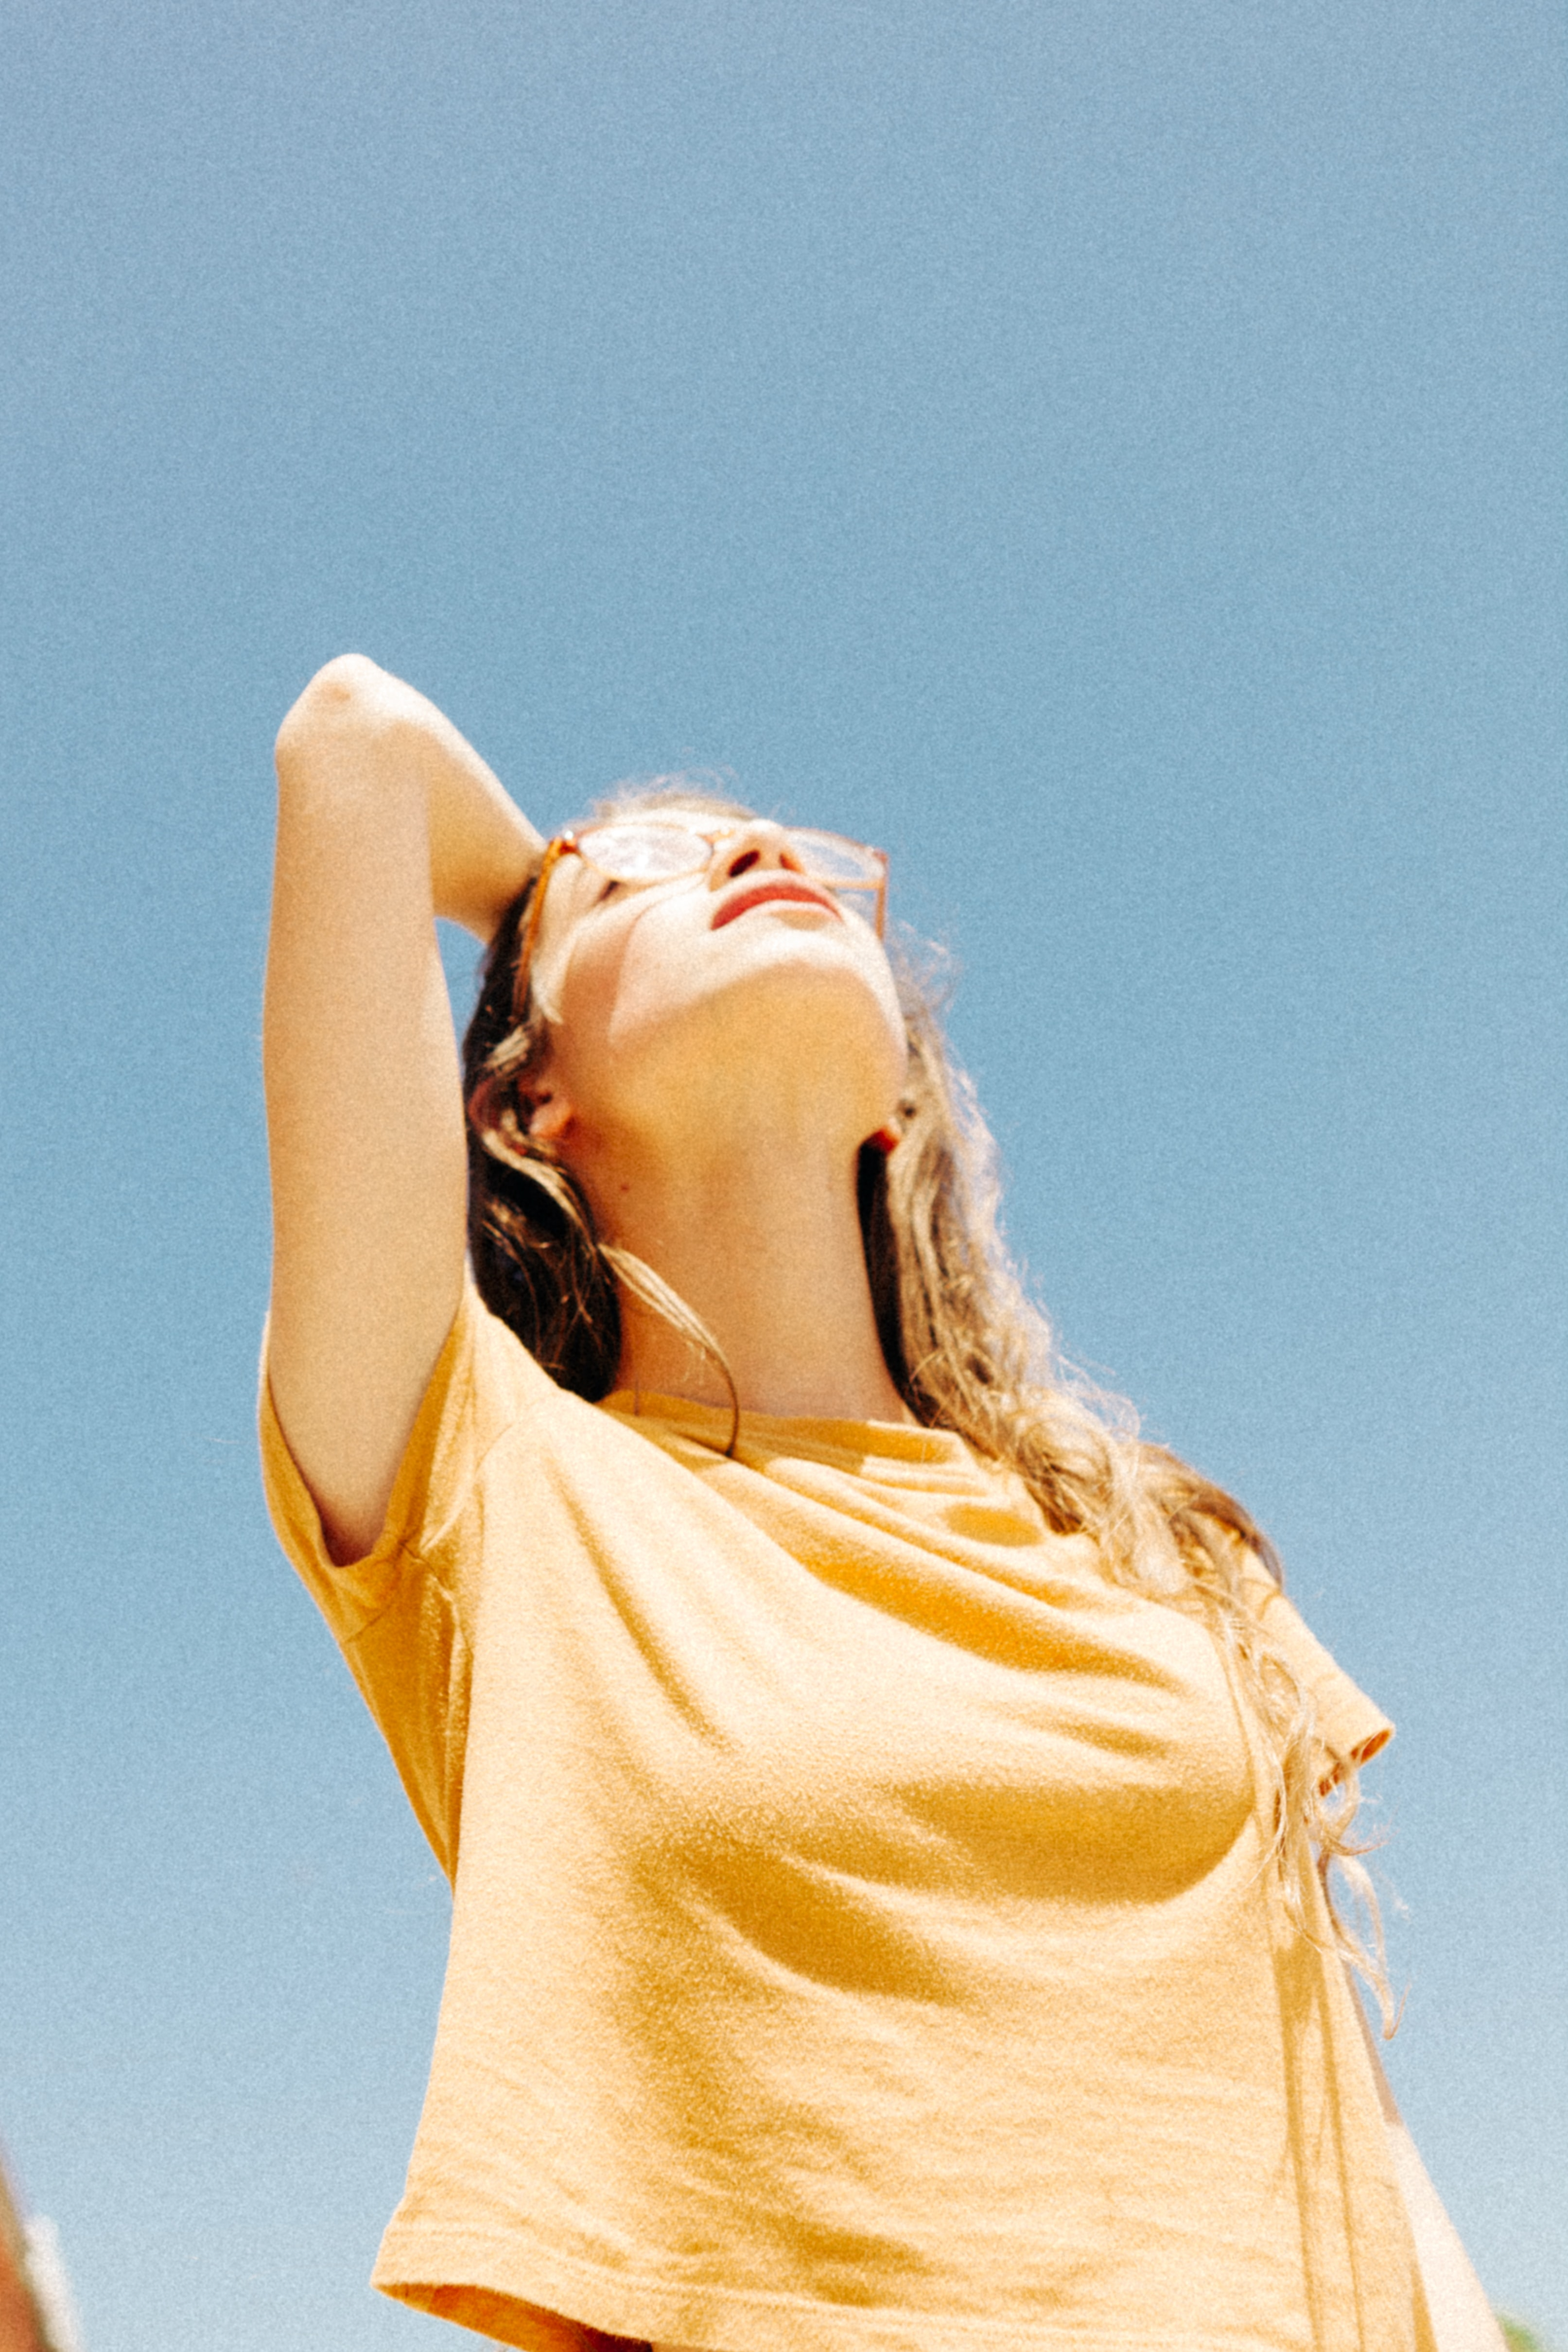 Young woman in a yellow shirt and vintage glasses staring up at the sky